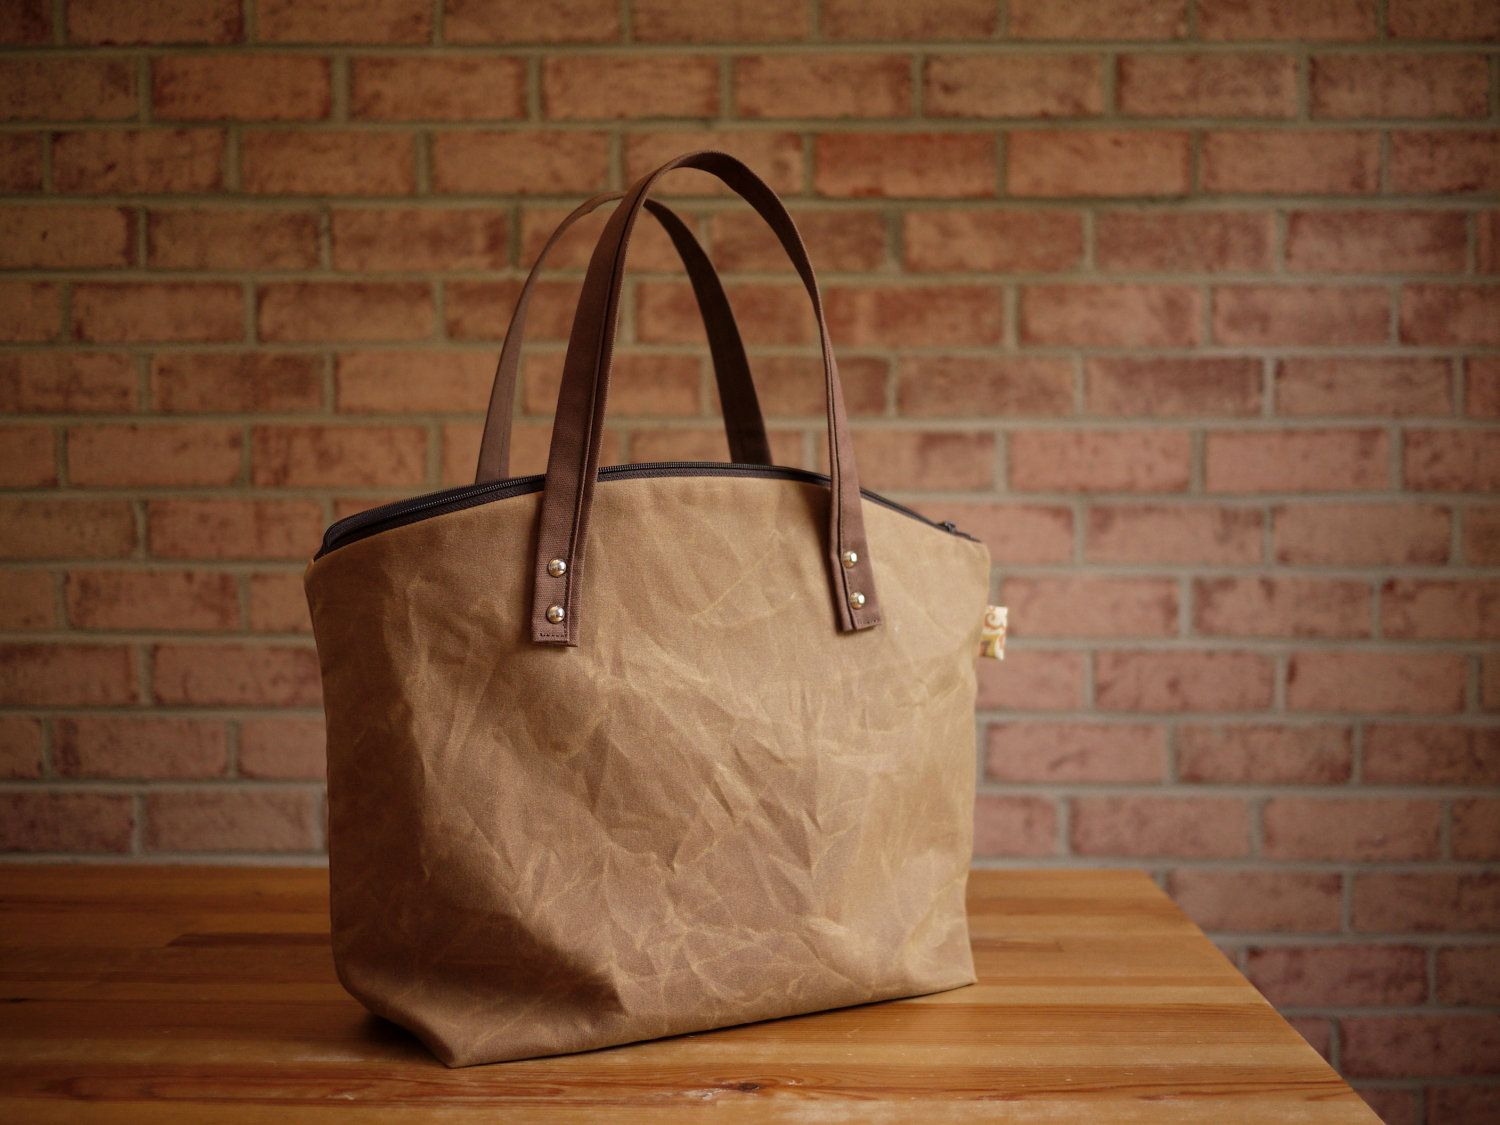 Great fall bag - waxed canvas tote from solaWu via Etsy.